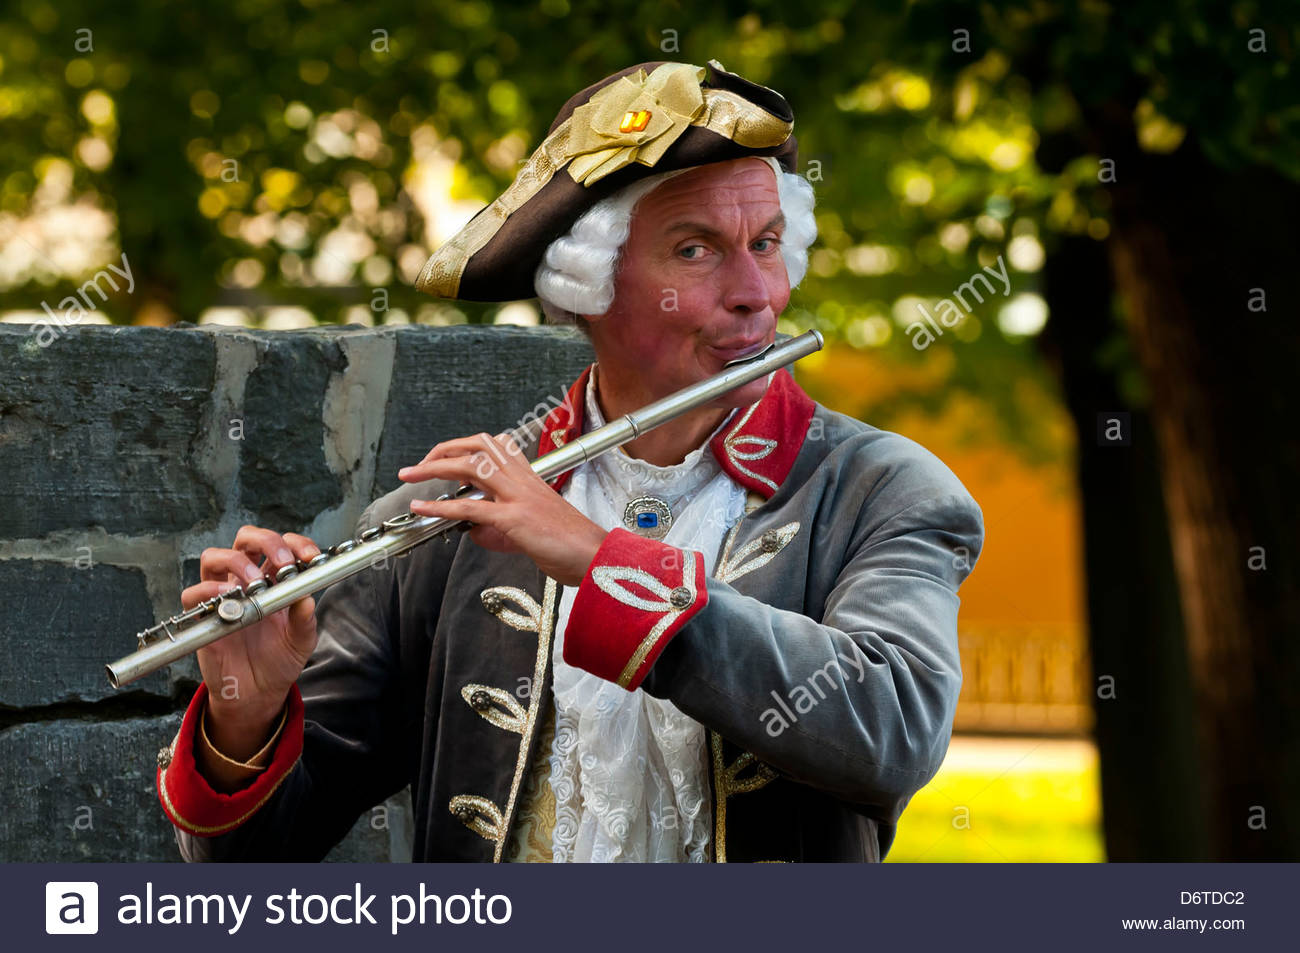 A flute player in historical costume Sanssouci Palace Sanssouci Park (a UNESCO World Heritage site) Potsdam Germany  sc 1 st  Alamy & A flute player in historical costume Sanssouci Palace Sanssouci ...